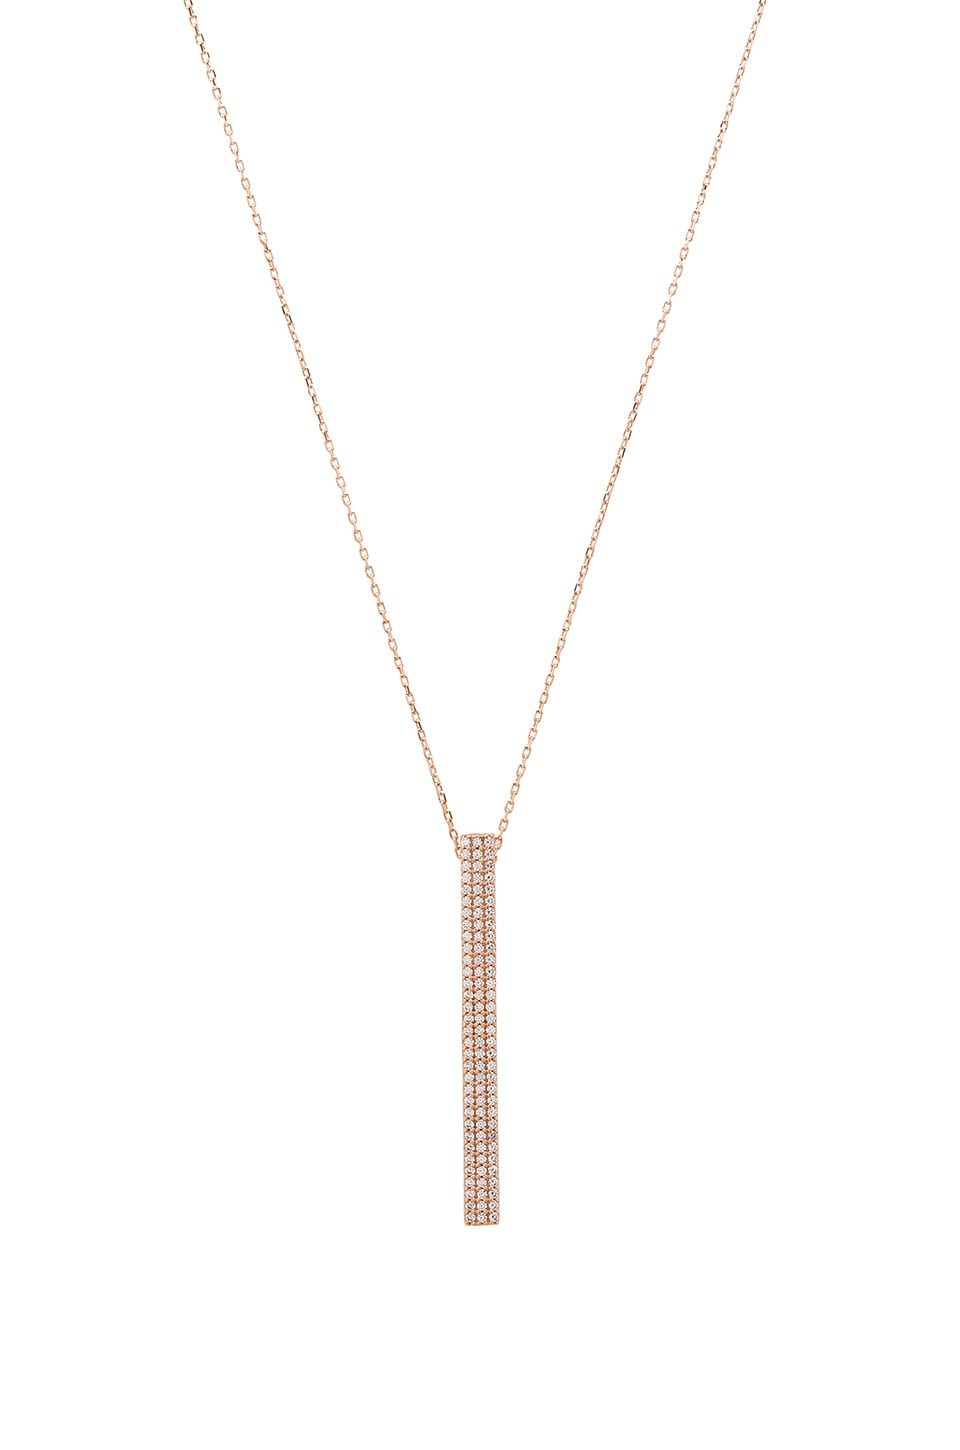 Ettika Luxe Long Bar Necklace in Rose Gold